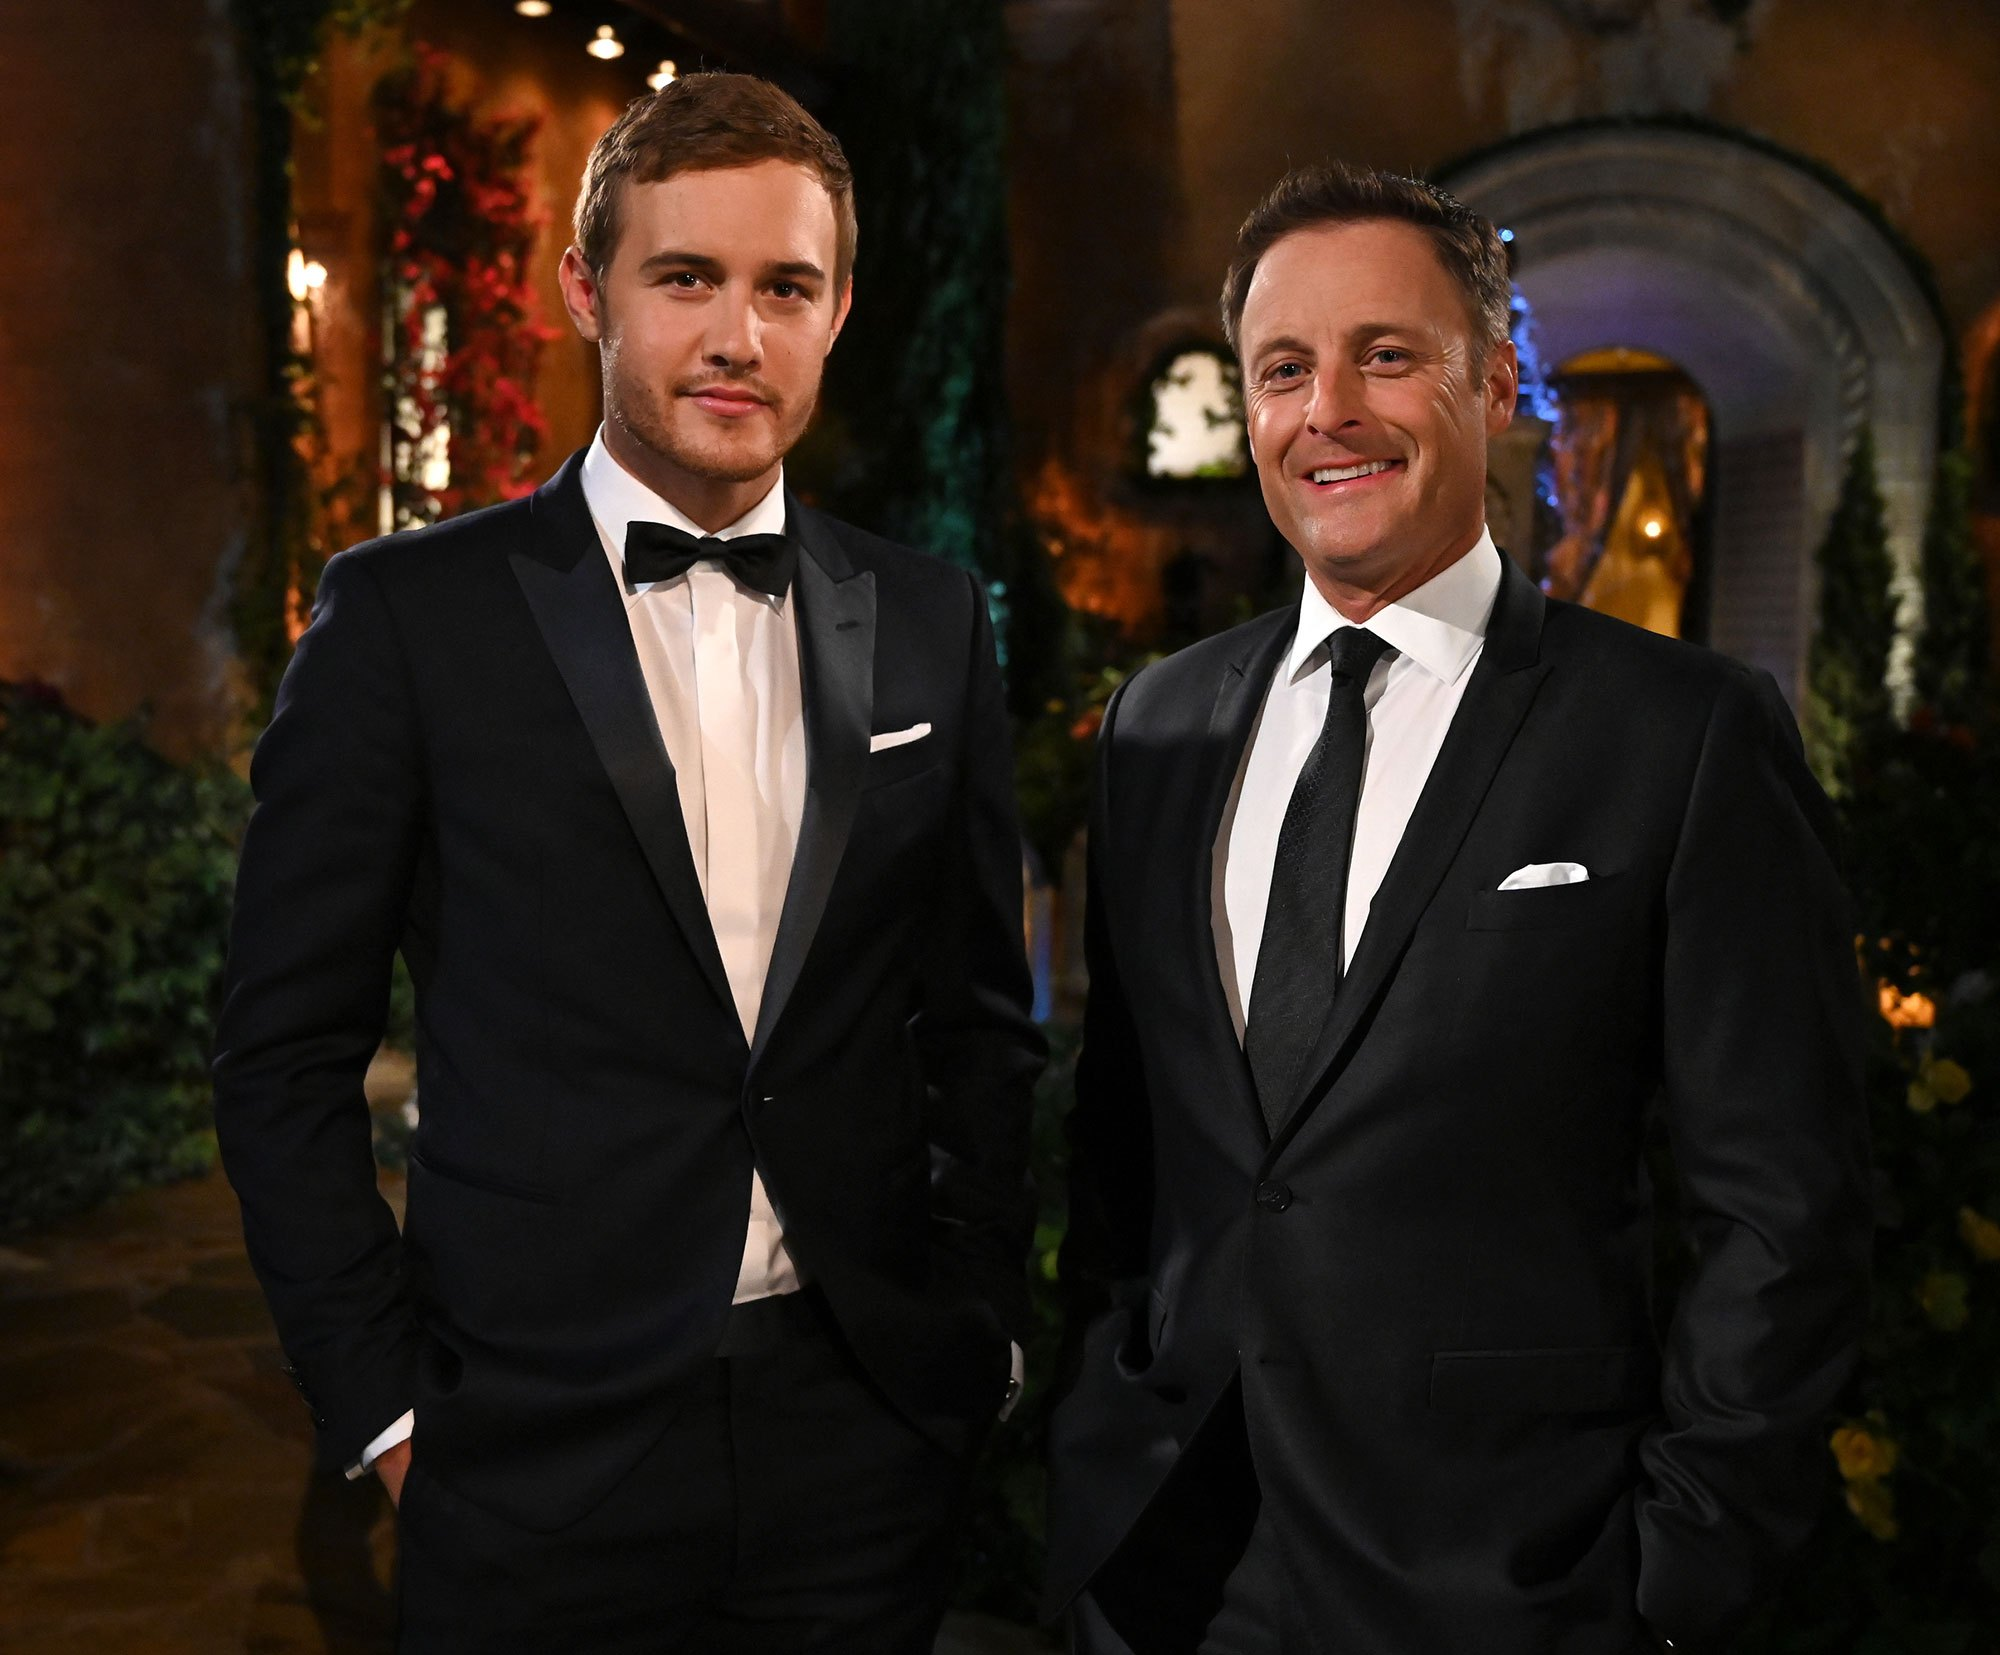 Peter Weber Bachelor and Chris Harrison Gut Wrenching The Bachelor